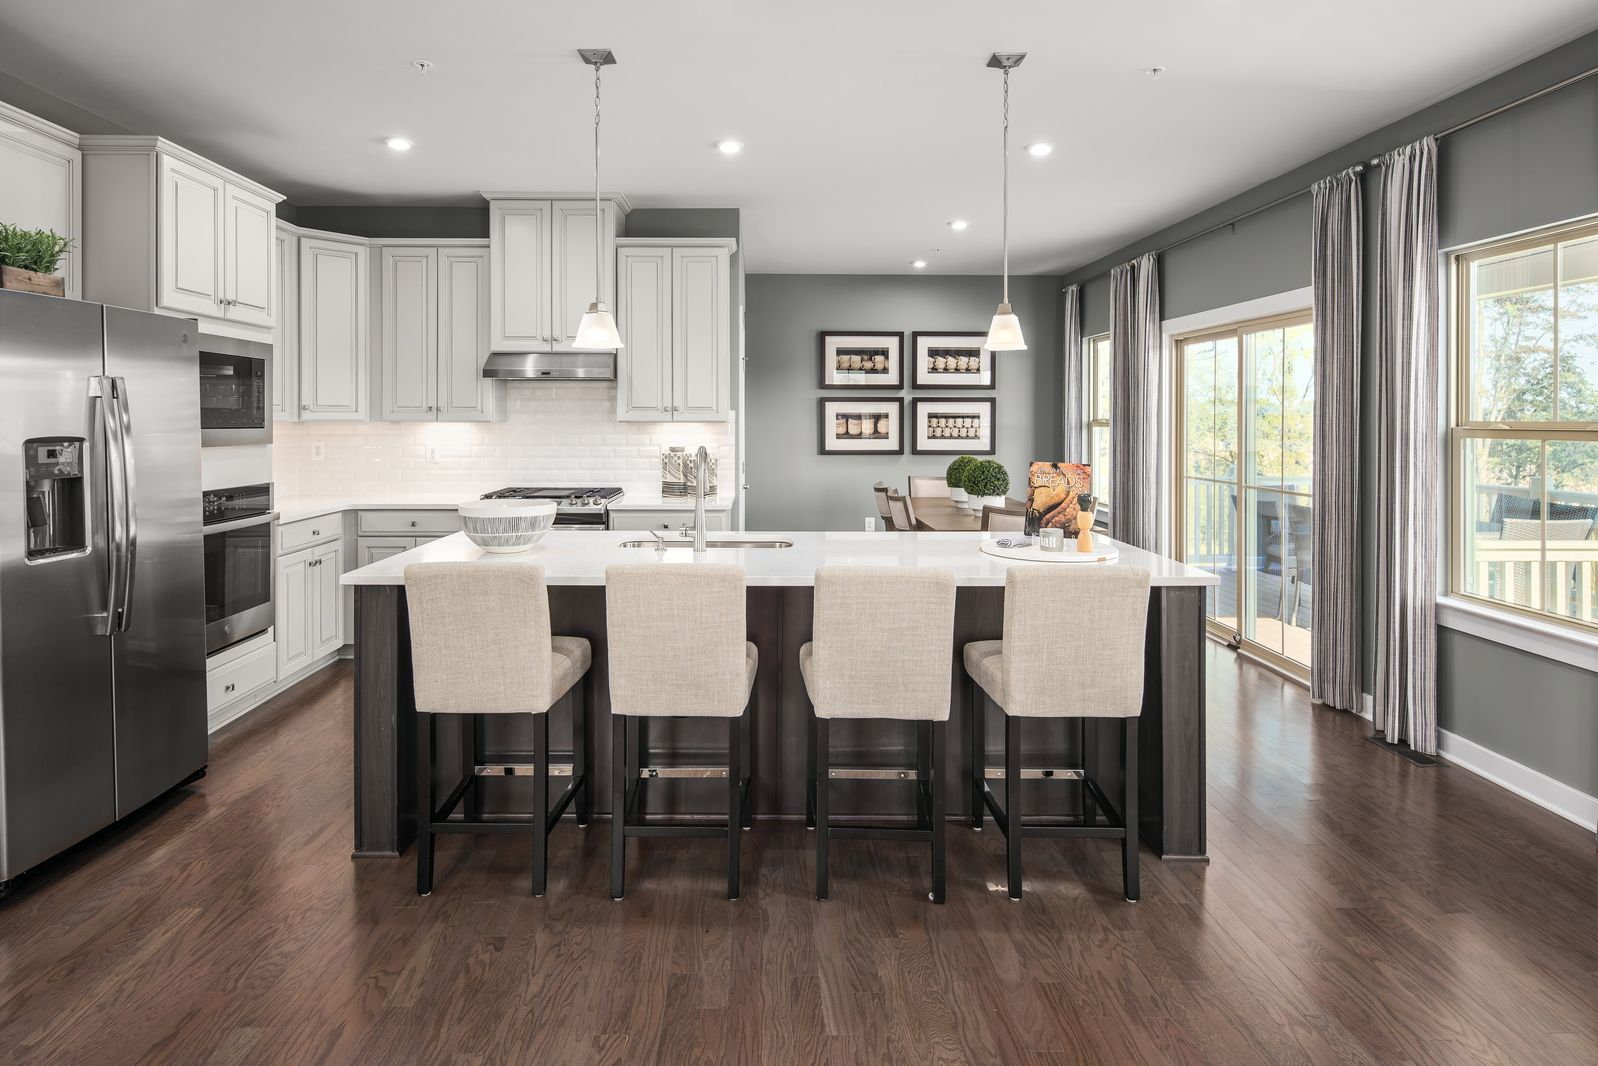 Kitchen featured in the Roanoke By Ryan Homes in Washington, MD